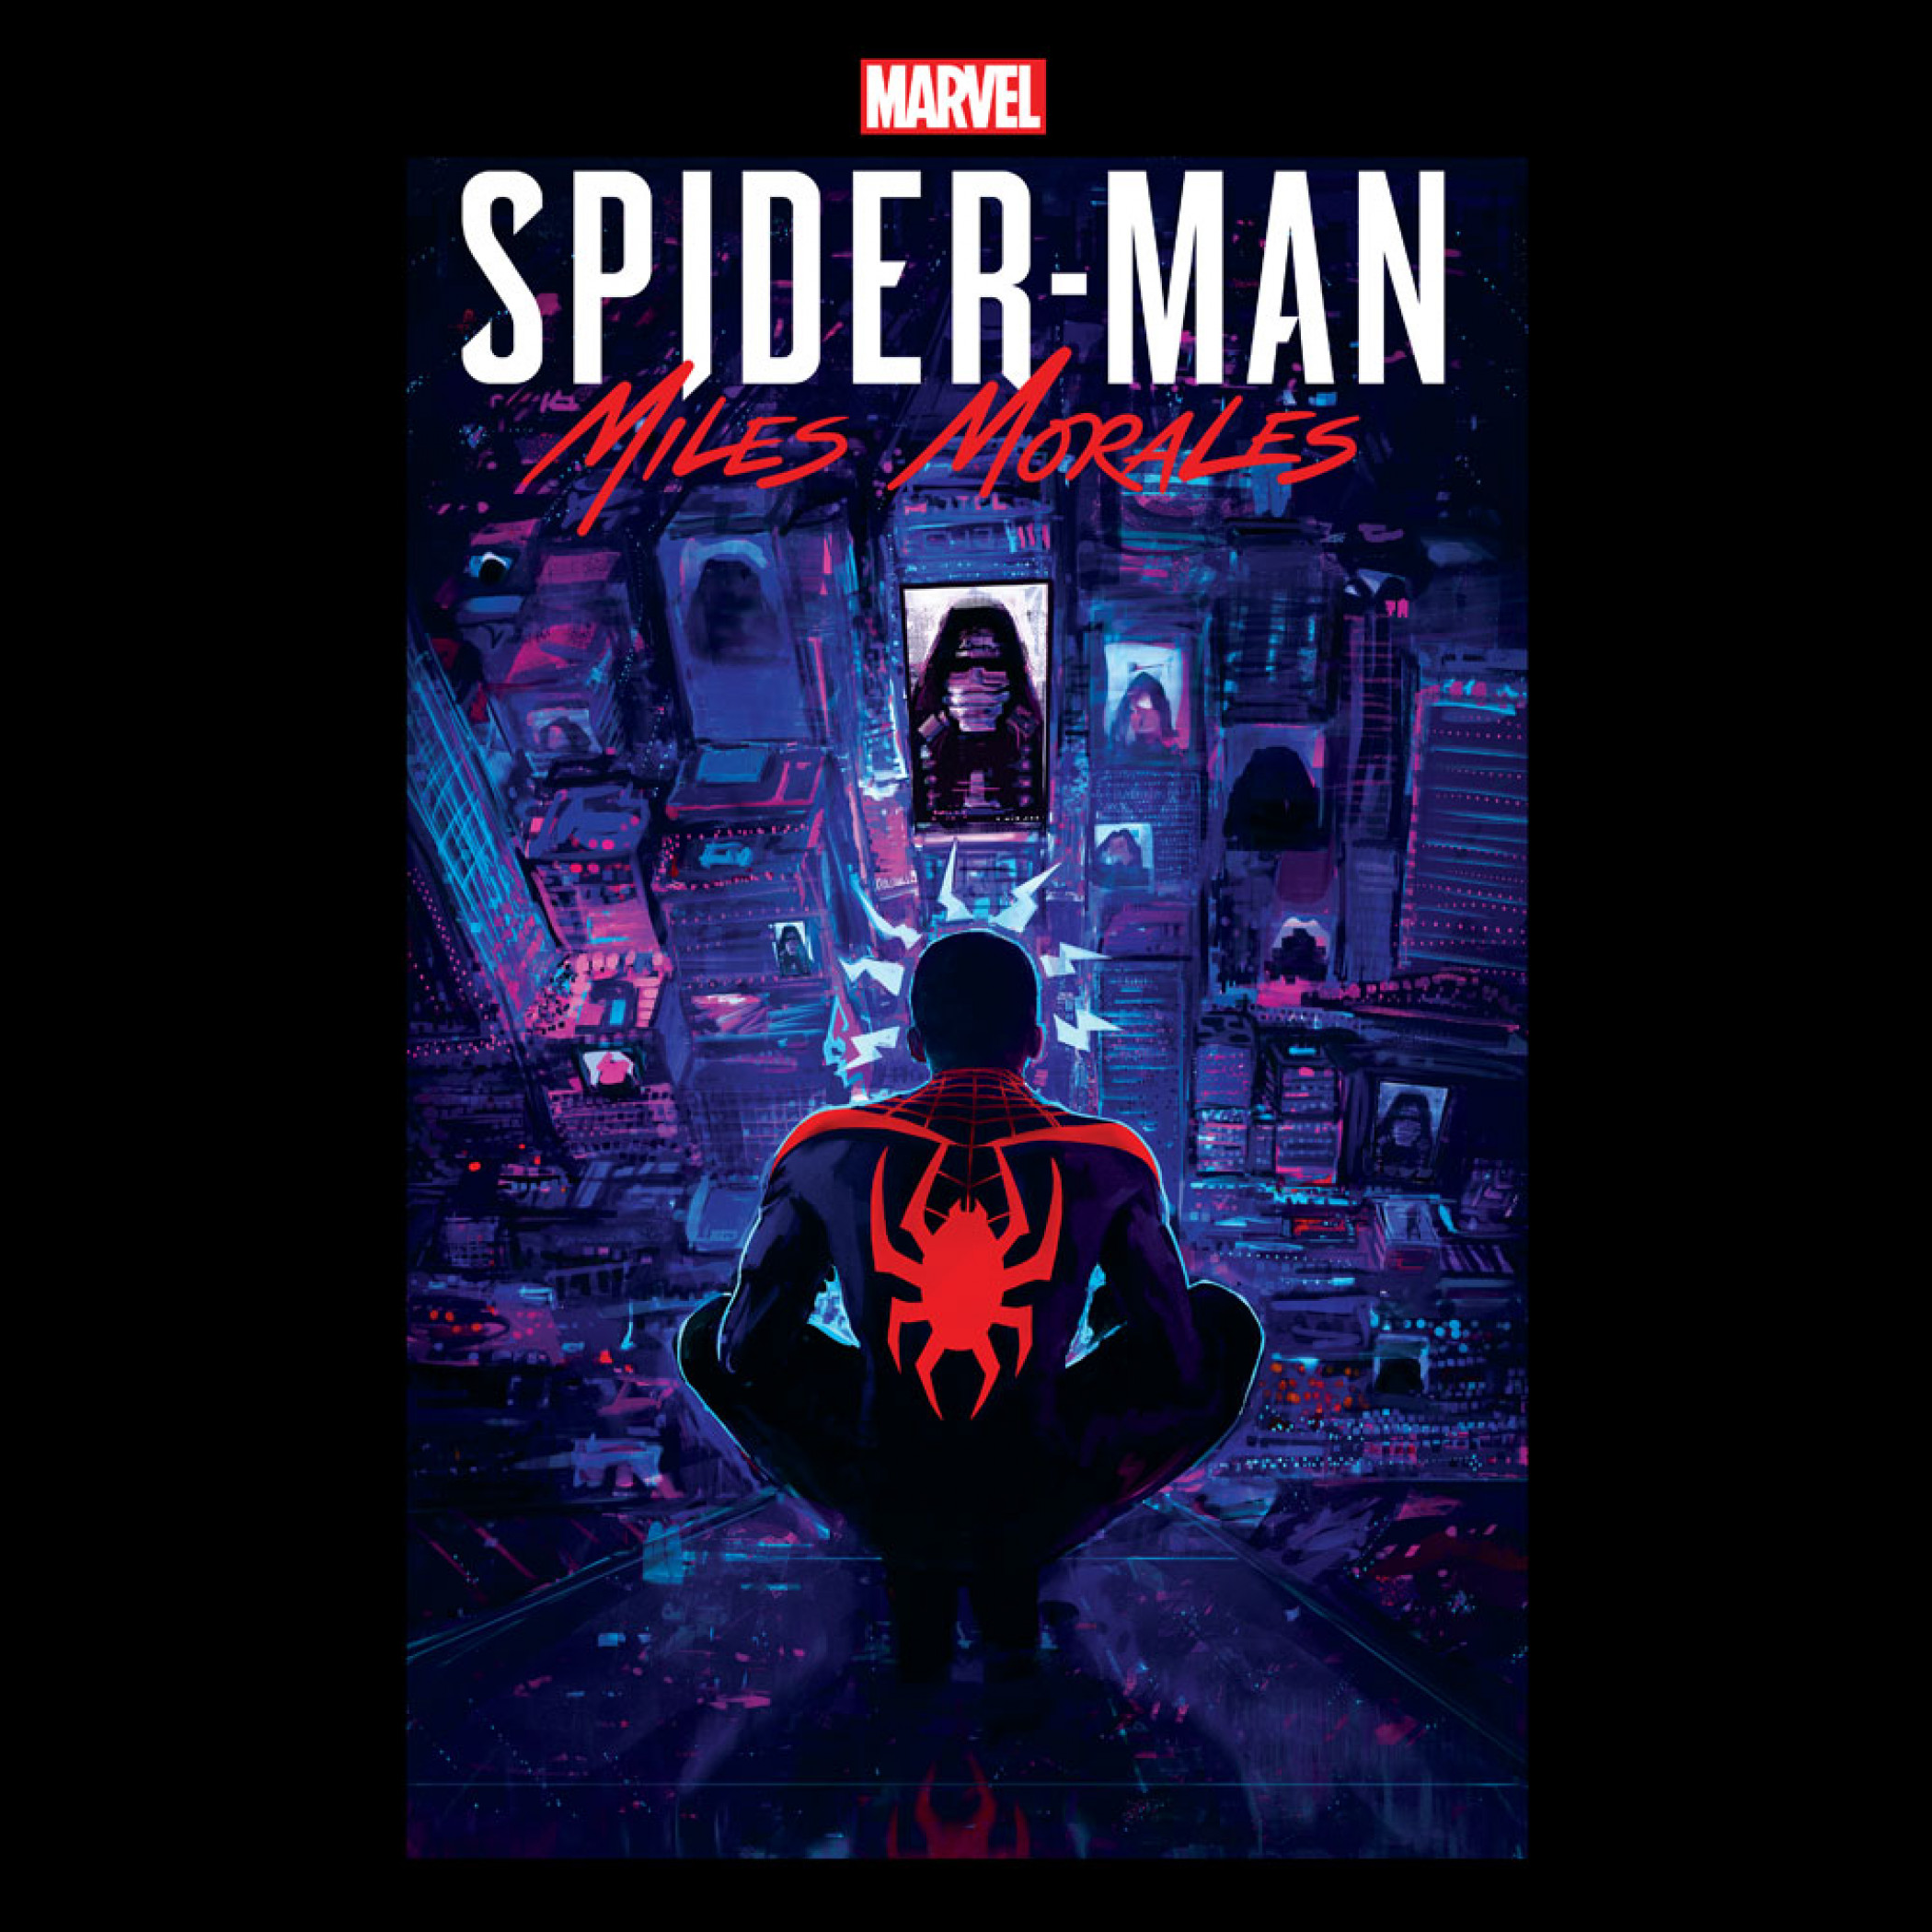 Spider-Man Miles Morales Issue #53 The Tinkerer Cover Art T-Shirt